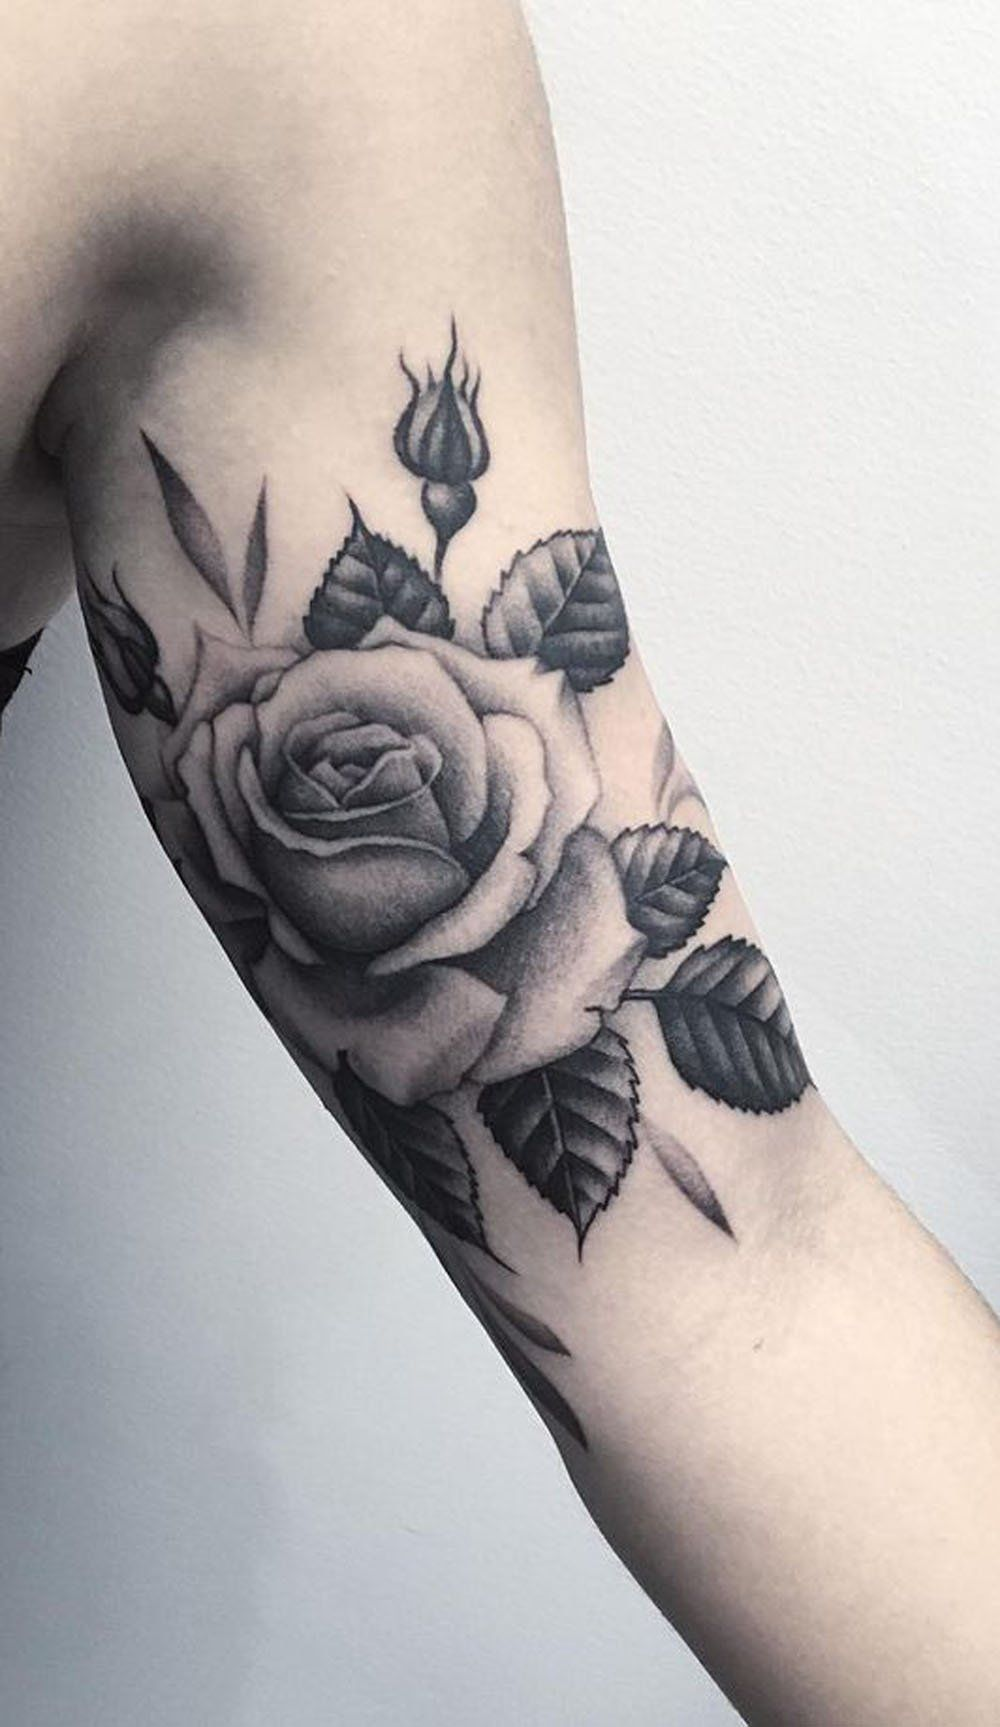 d6e2bed27 Realistic Black and White Rose Bicep Arm Tattoo Ideas for Women -  www.MyBodiArt.com